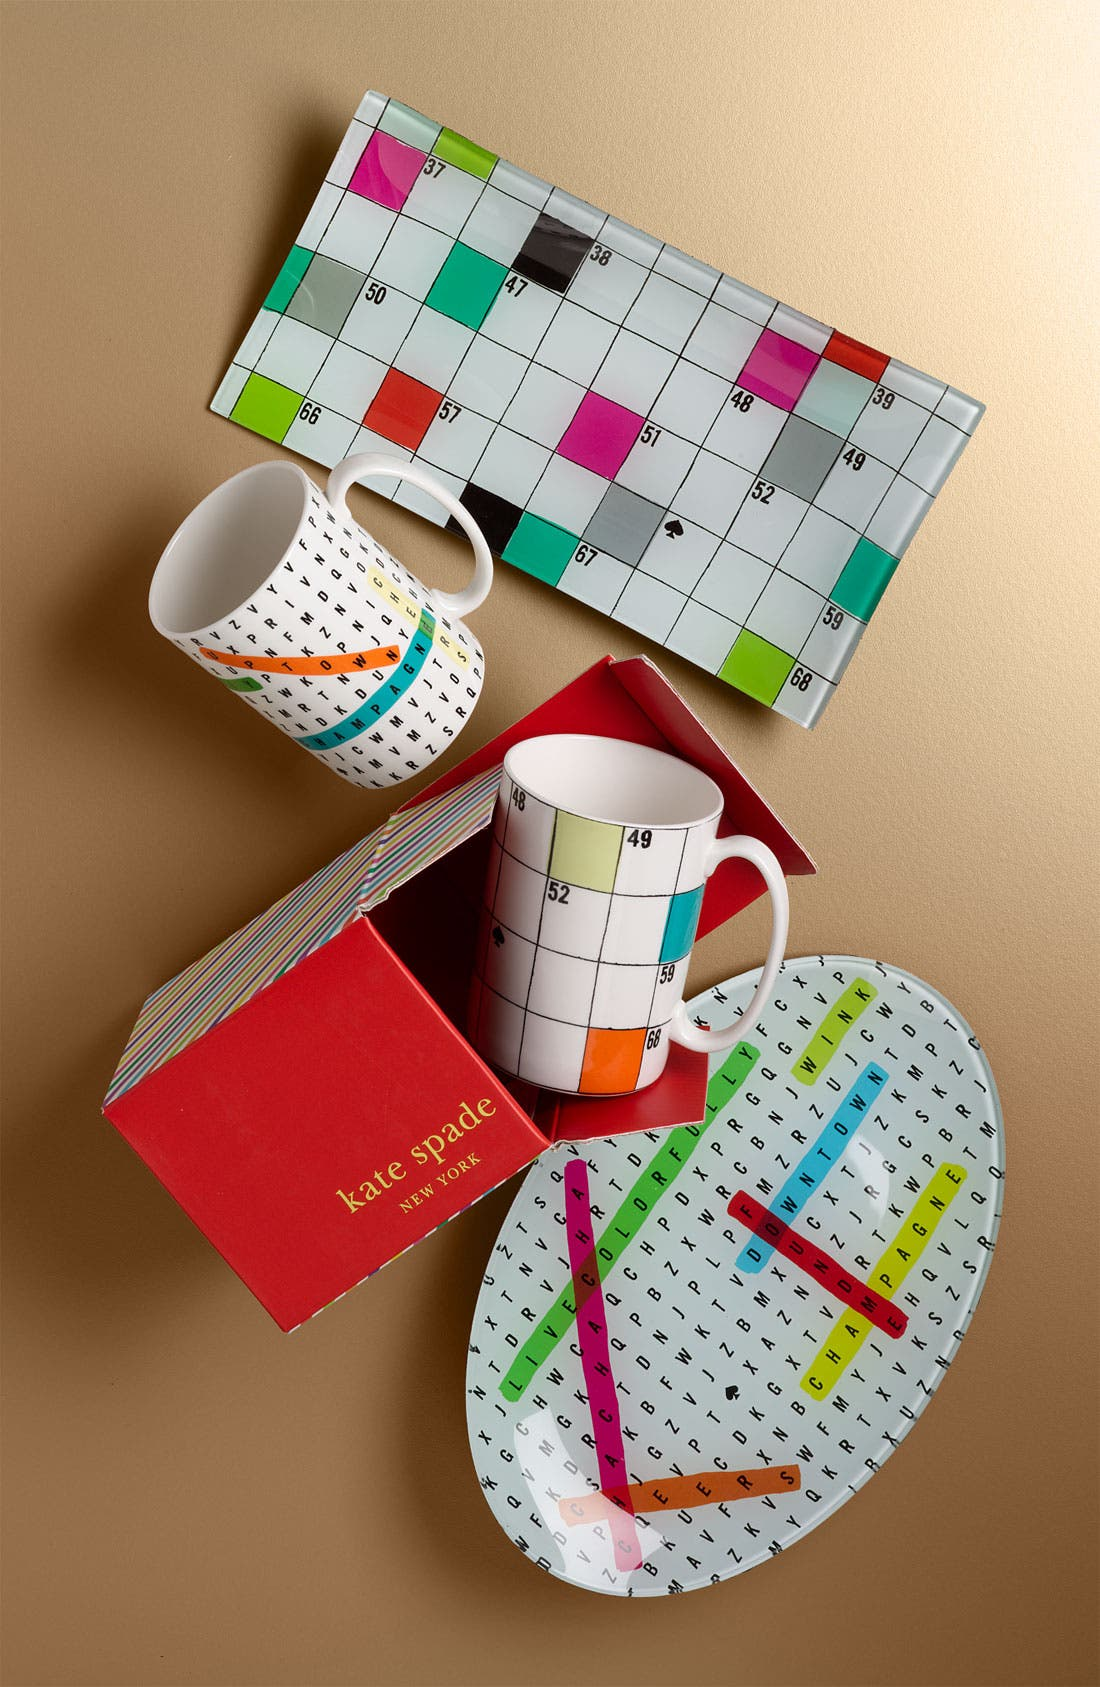 Alternate Image 2  - kate spade new york 'say the word' crossword mug